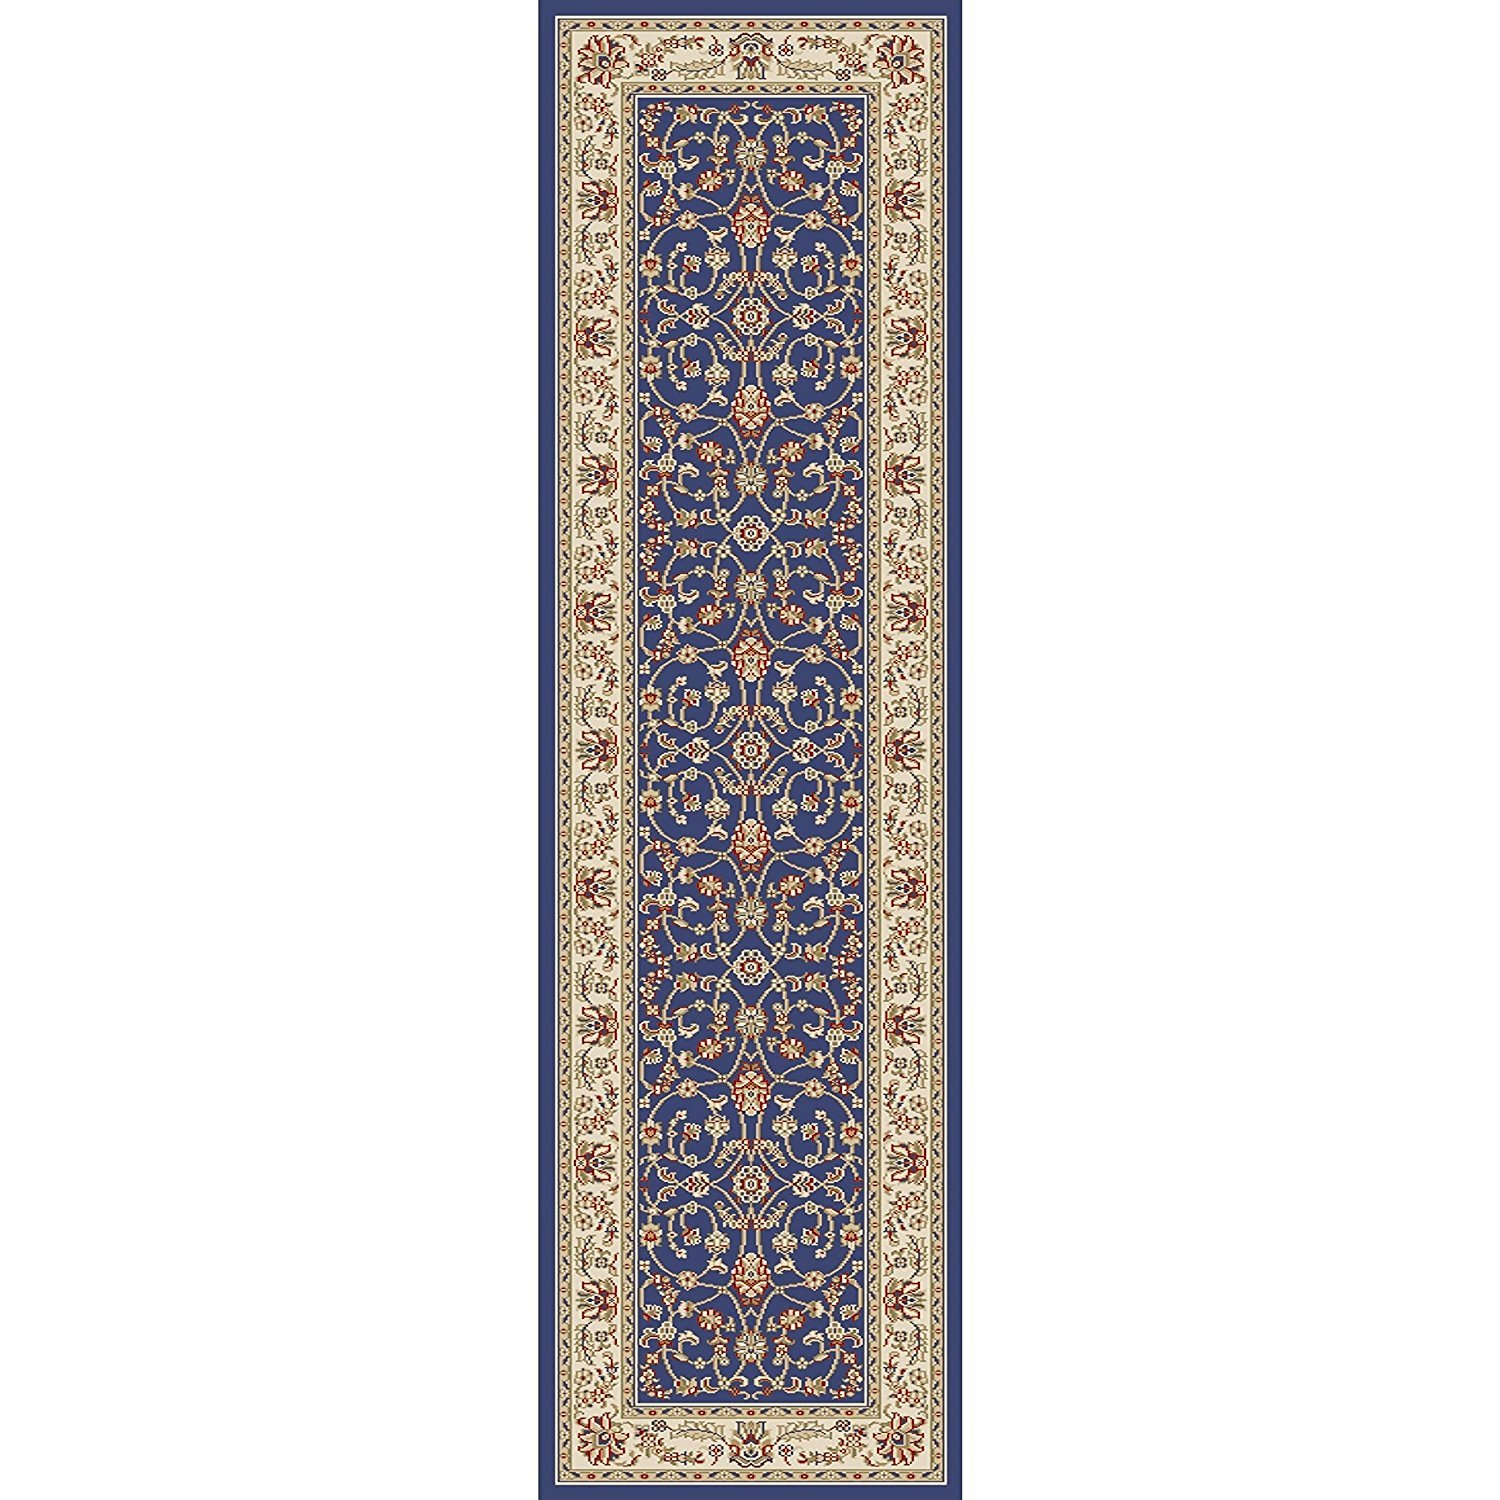 1pc 2'2'' x 7'7'' ft Ivory Blue Navy Orietnal Hallway Rug, Victorian Themed Royal Vintage, Long Floral Carpet Entranceway French Country Classic Pattern Bordered Narrow Flooring Runner, Olefin